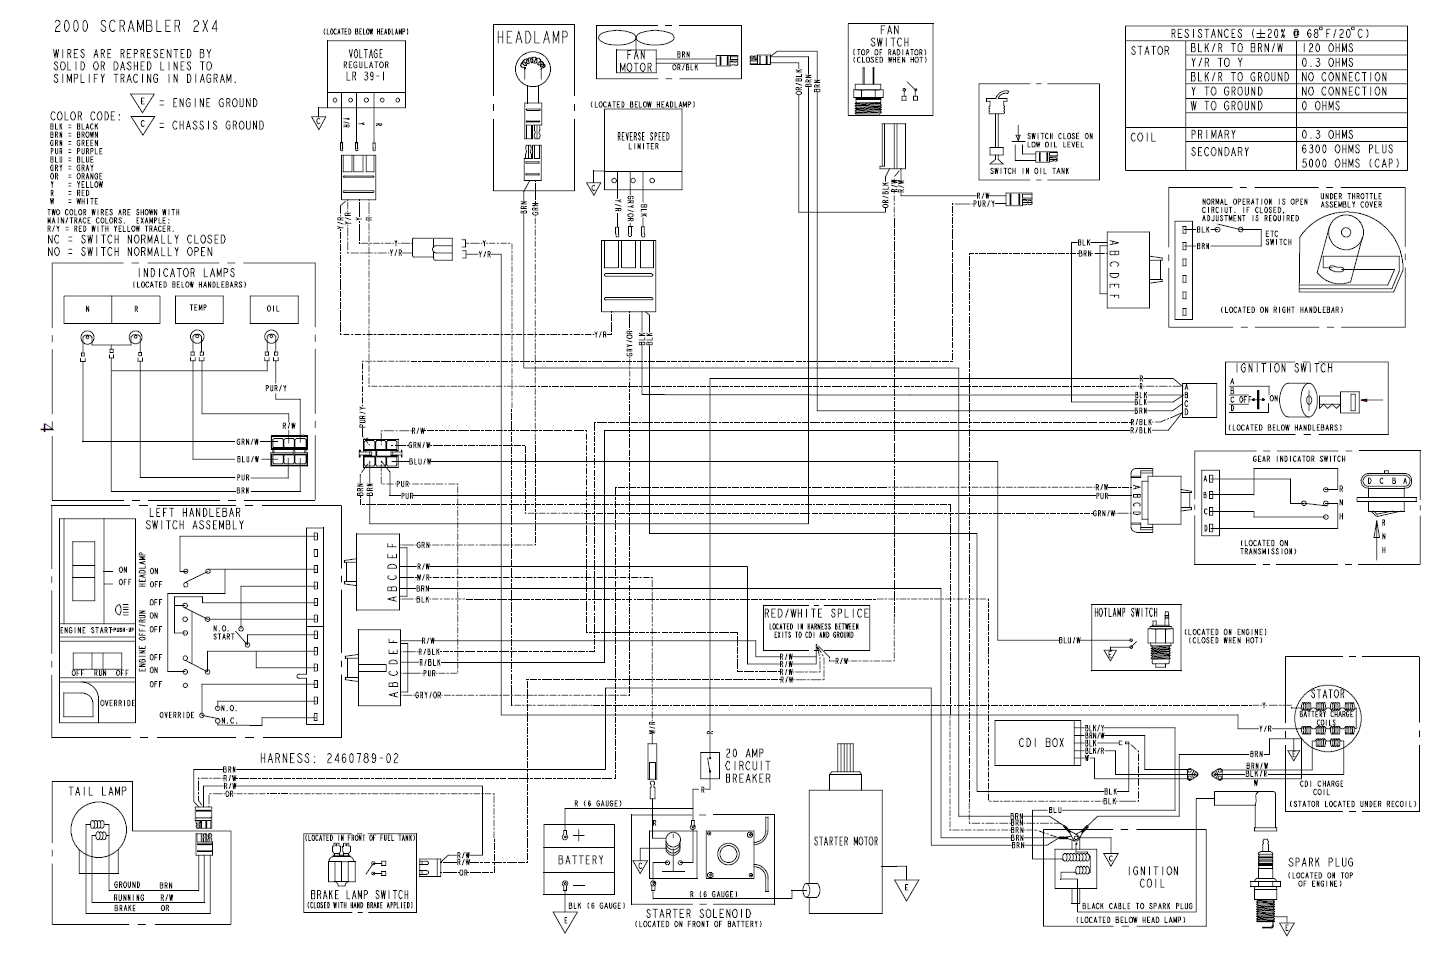 [DIAGRAM_38DE]  2C9645B Polaris 340 Edge 2008 Wiring Diagram | Wiring Library | Free Download Lace Sensor Wiring Schematics |  | Wiring Library